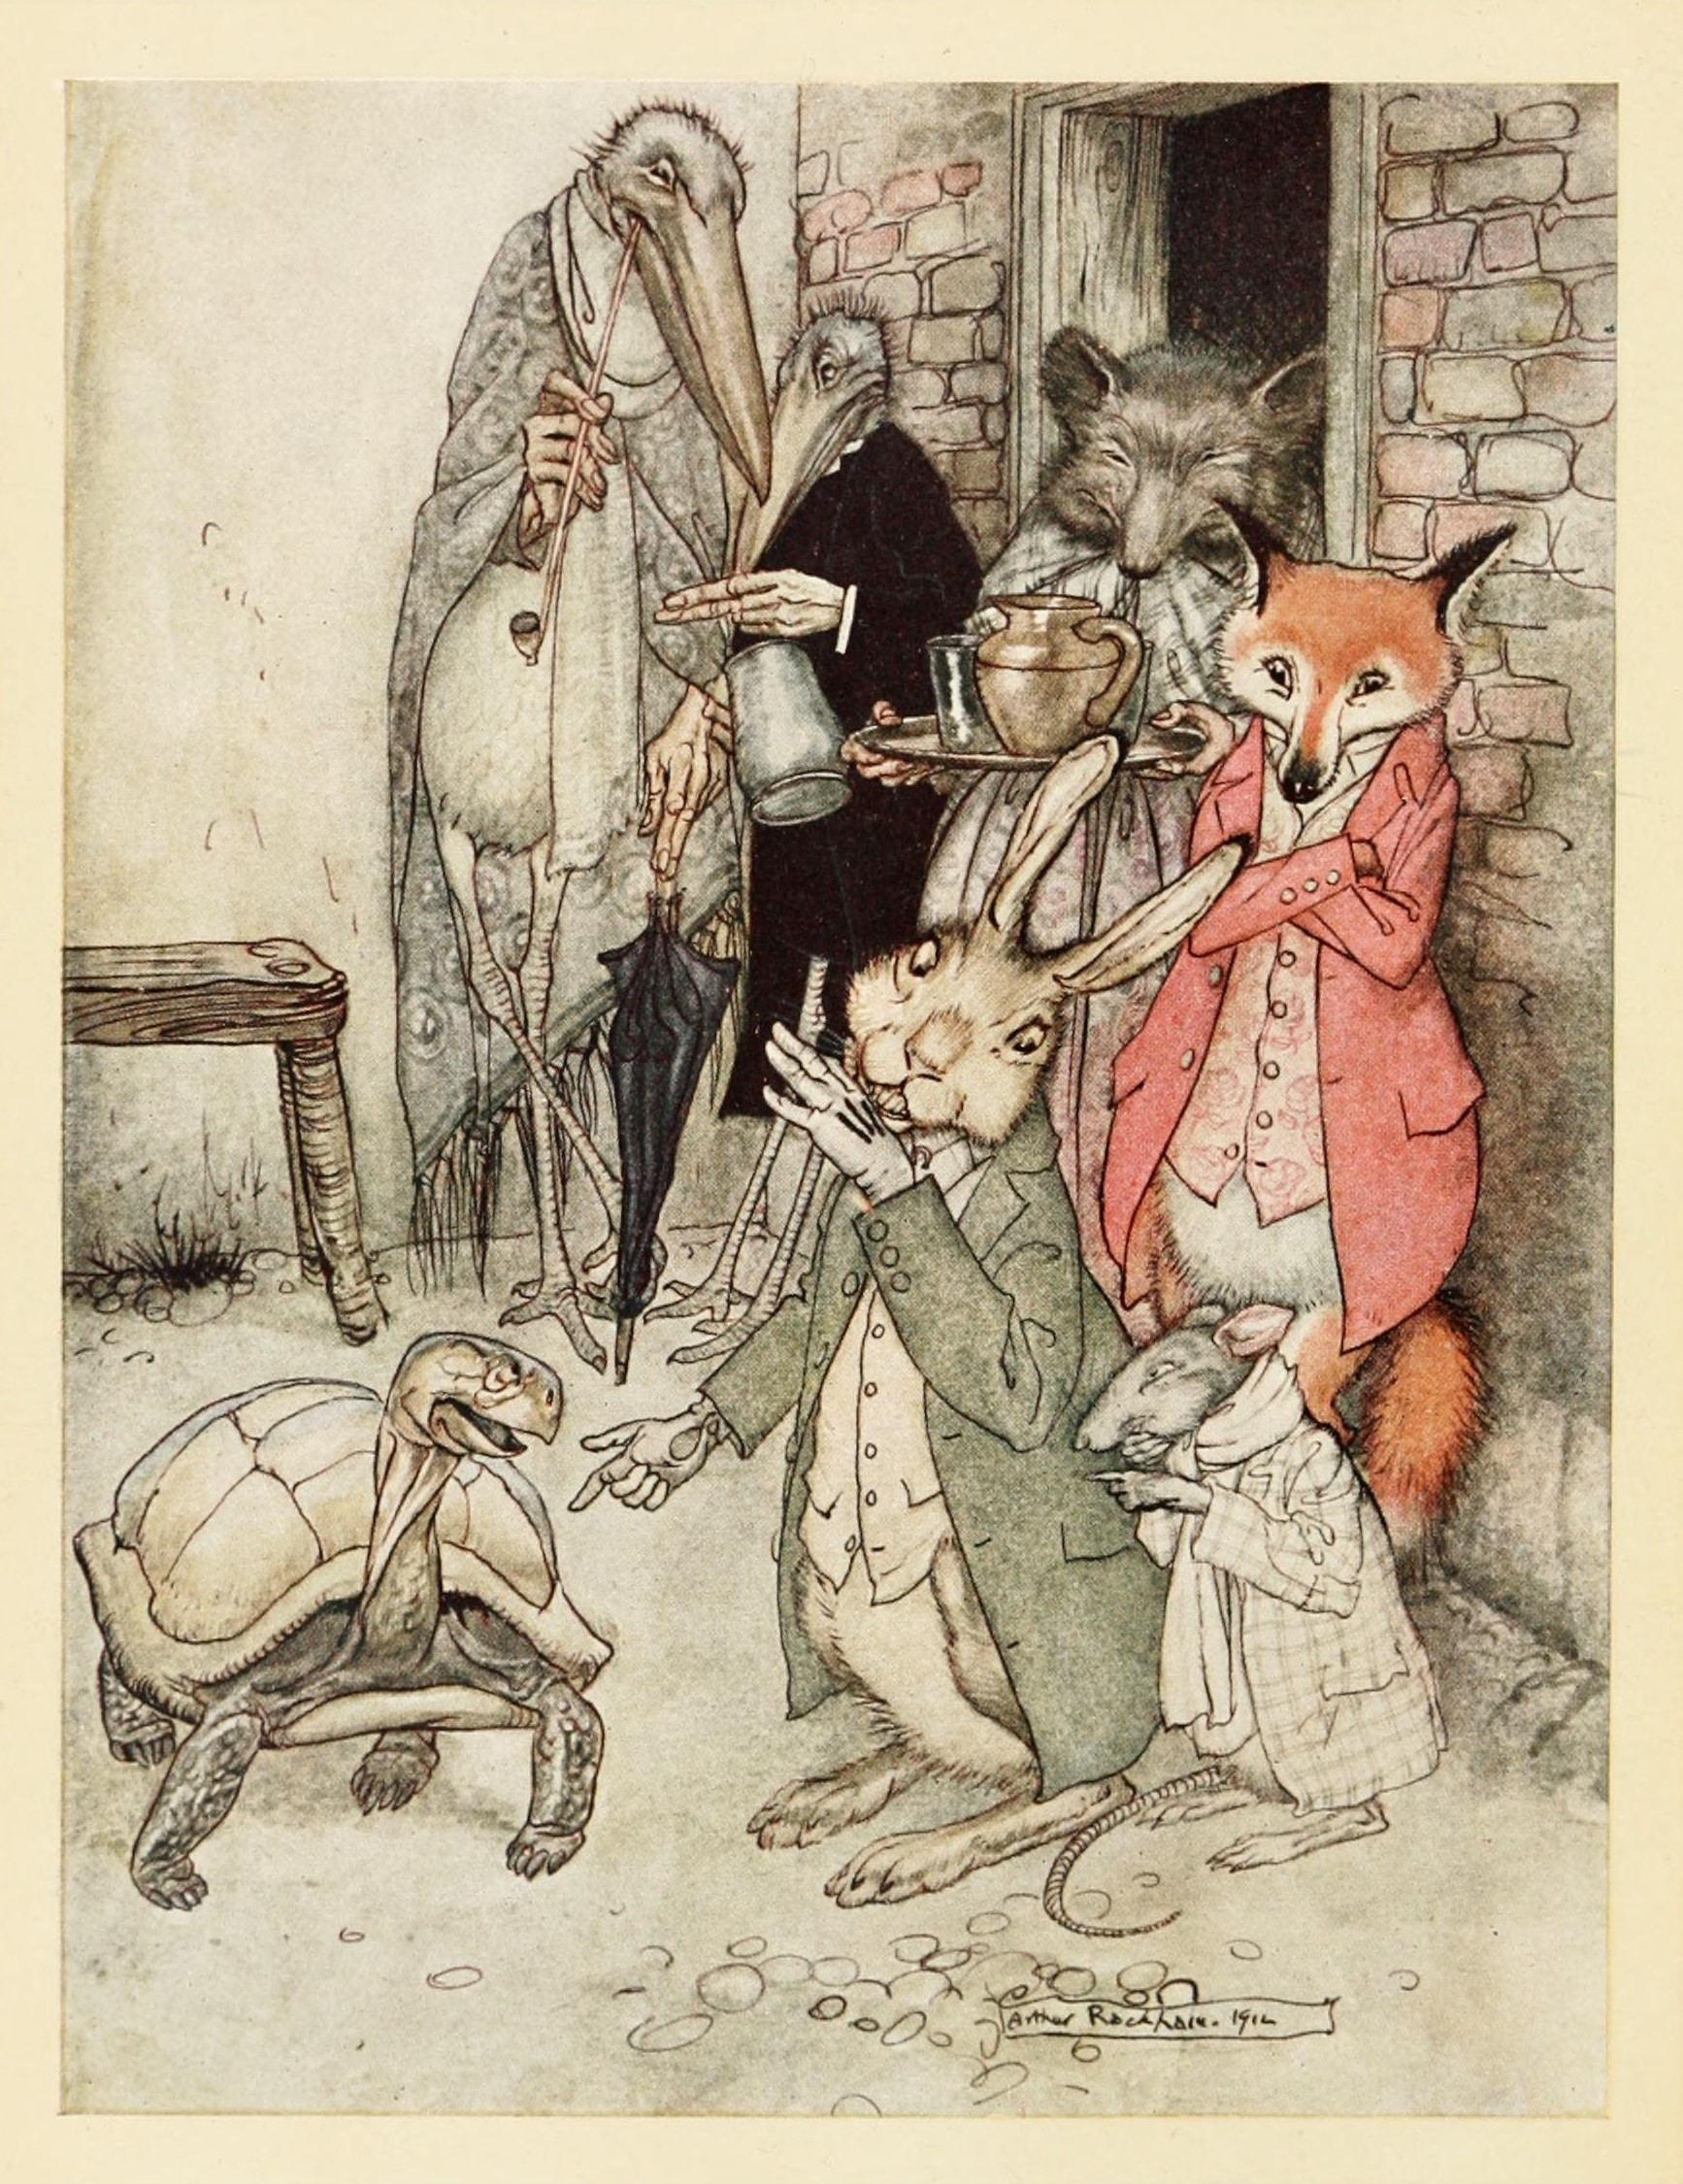 https://i2.wp.com/upload.wikimedia.org/wikipedia/commons/6/64/Tortoise_and_hare_rackham.jpg